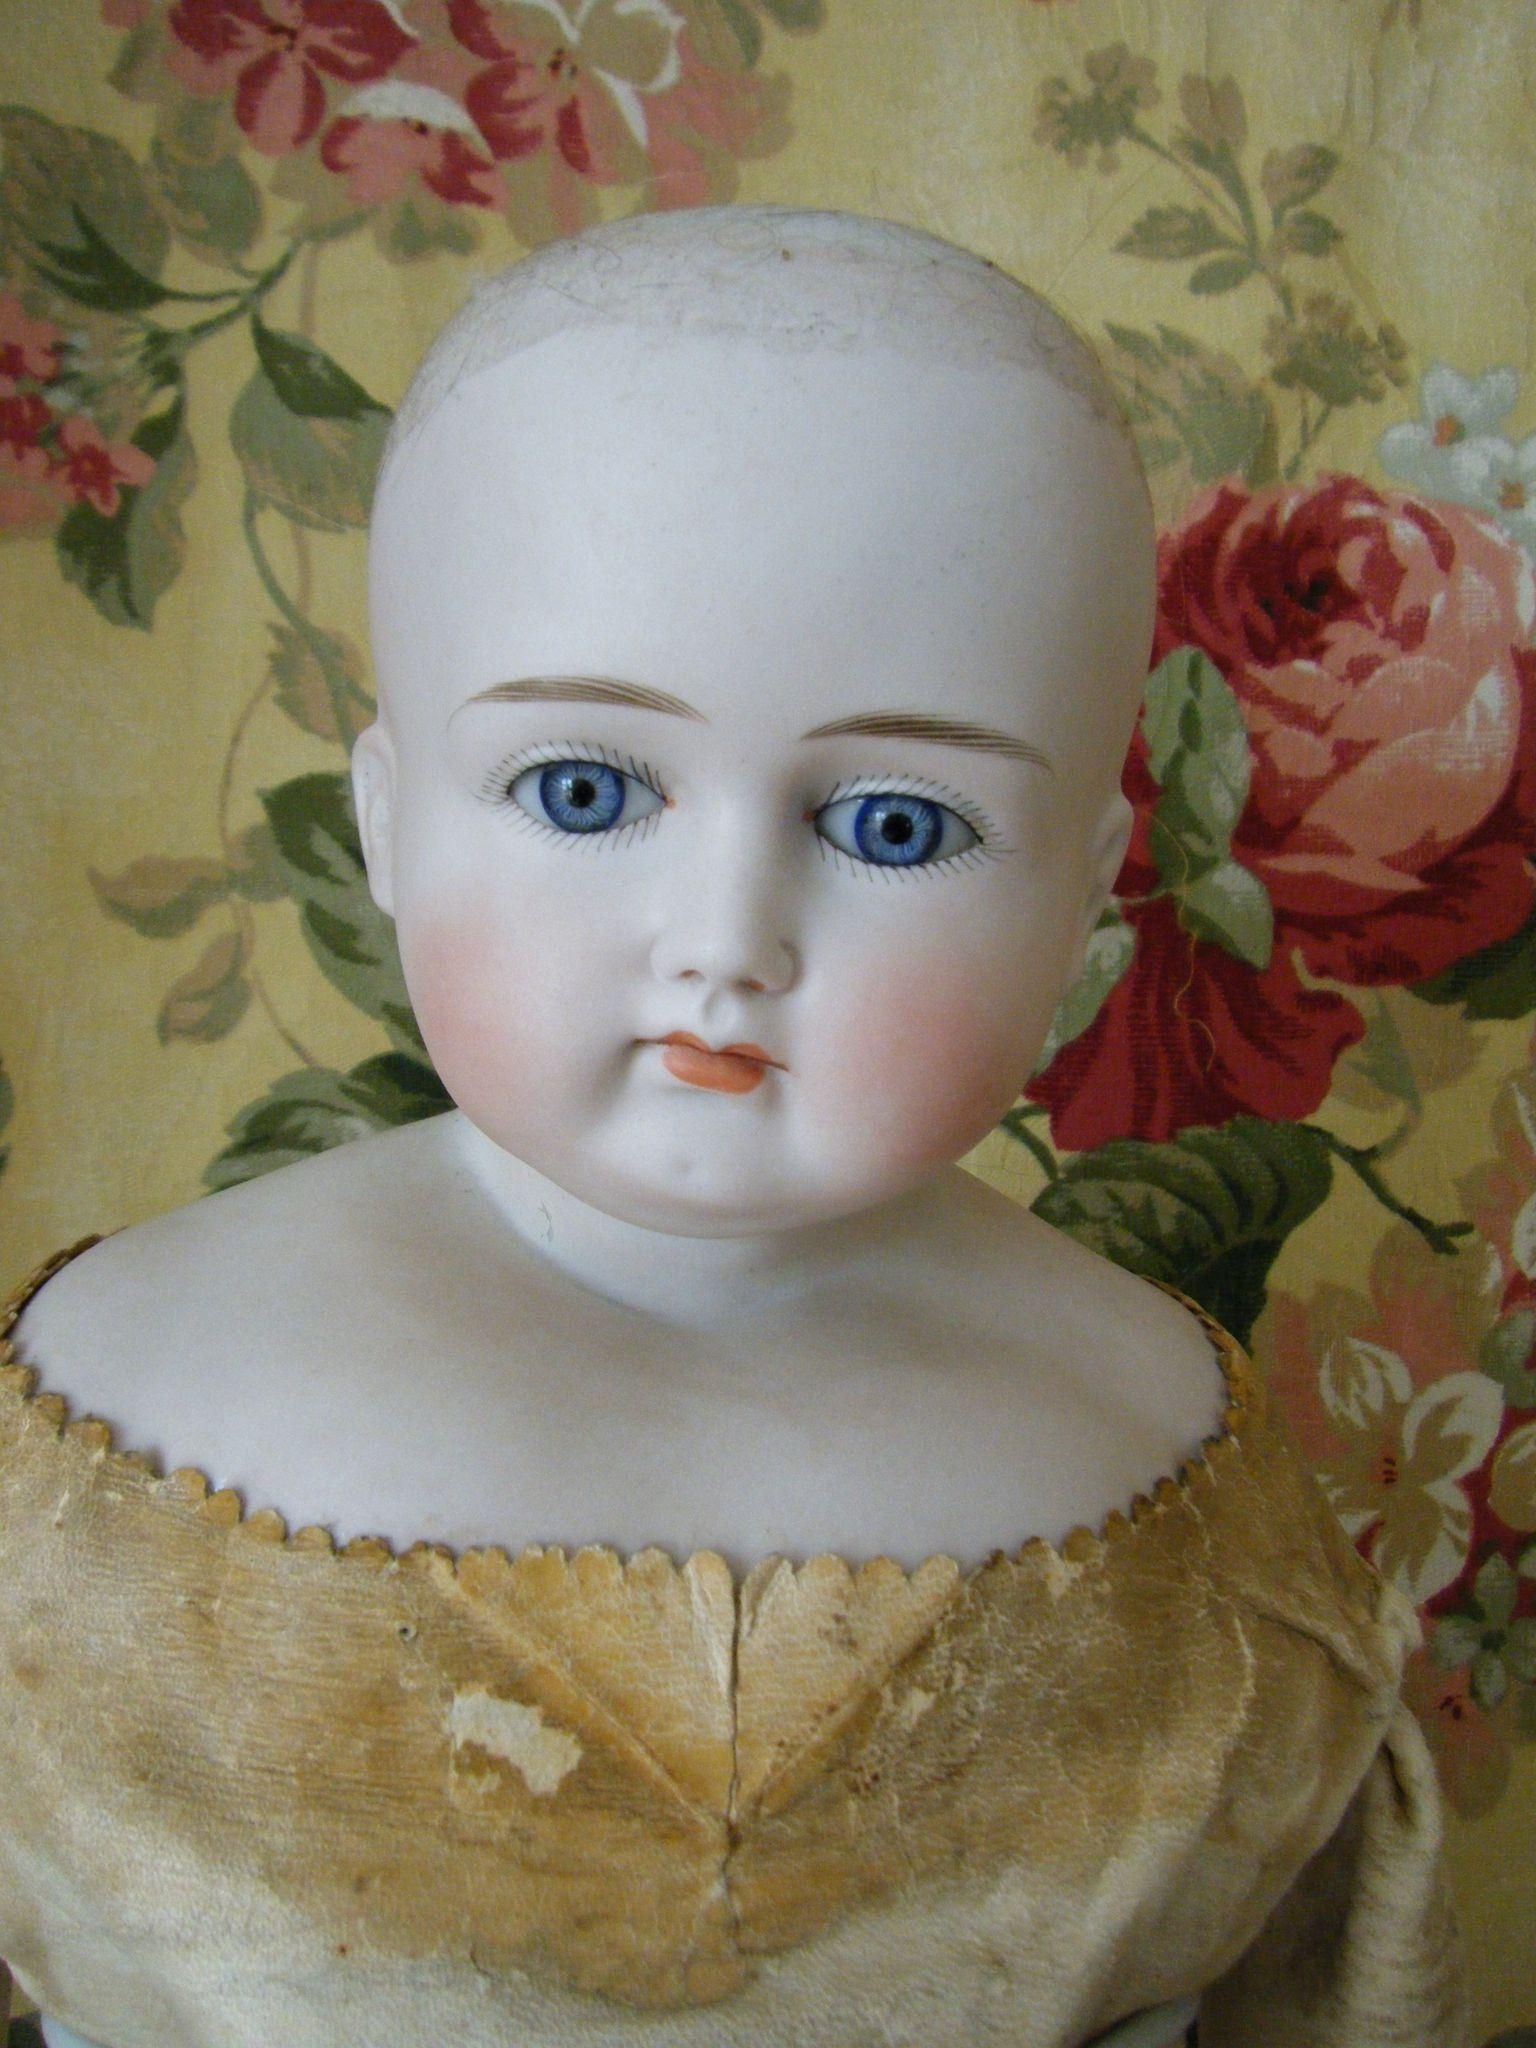 Stunning Beauty Early ABG Shoulder Head Circa 1885 French Market Fashion Doll